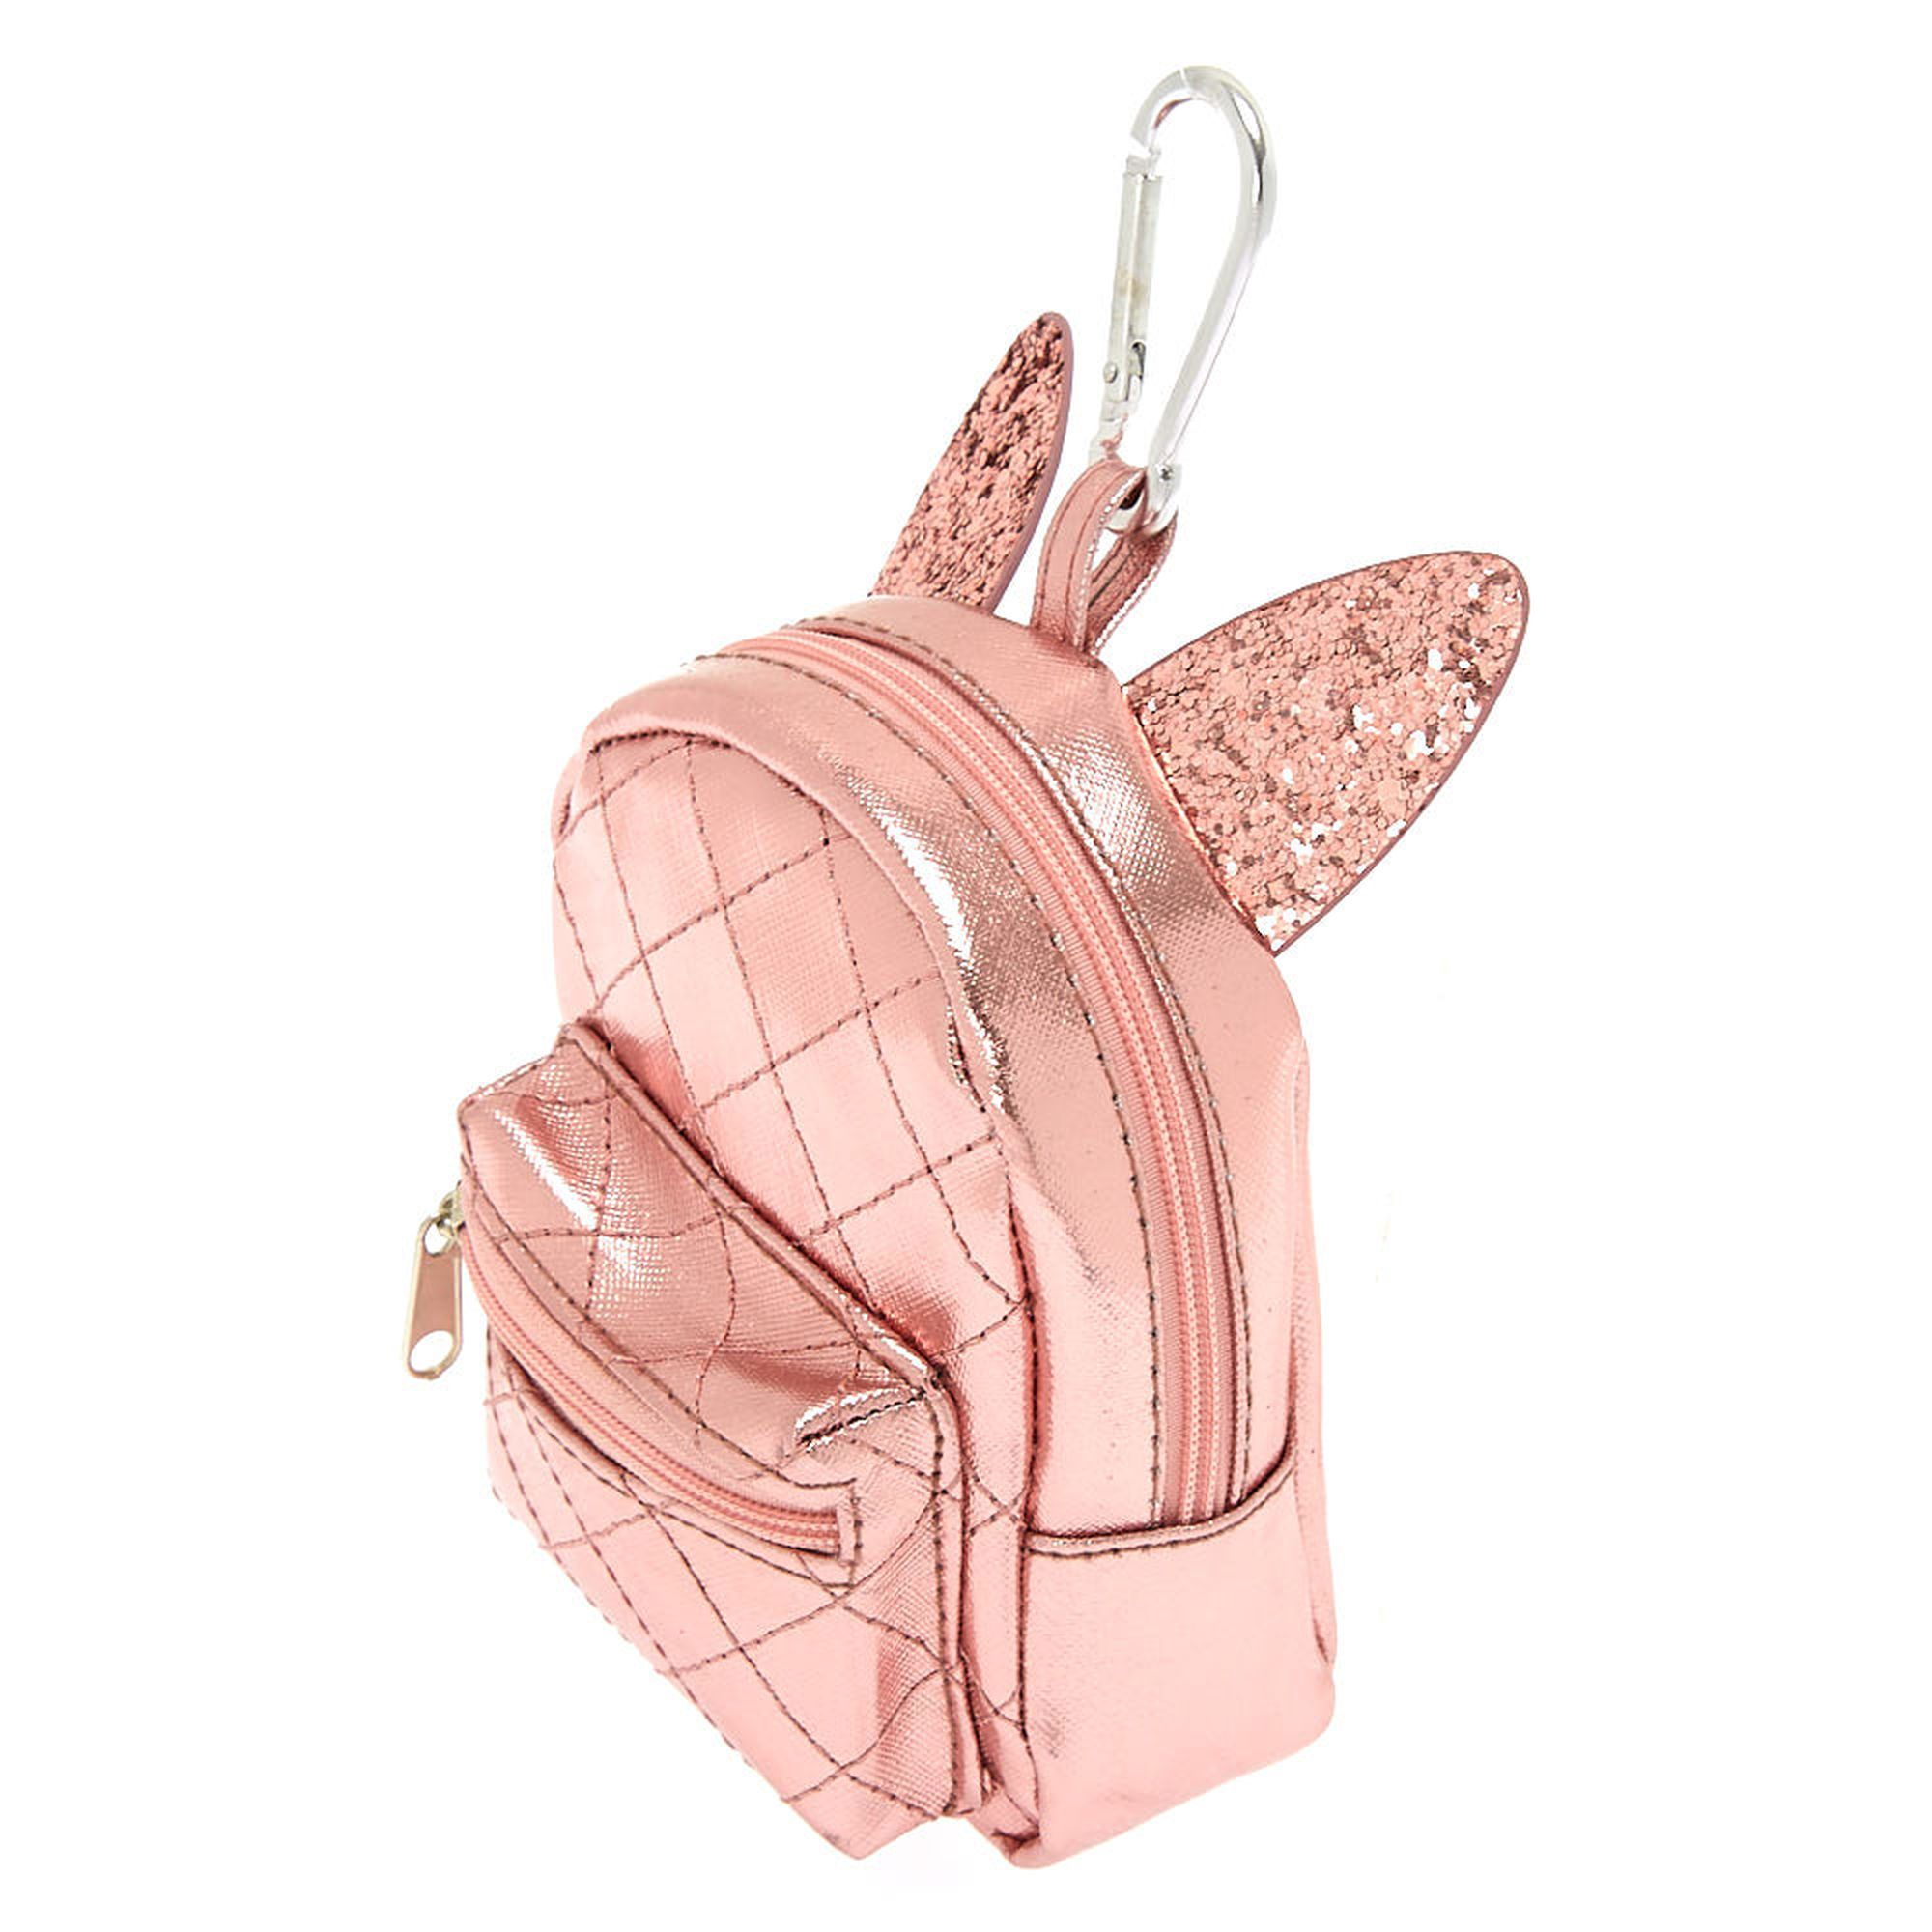 Claire's Metallic Cat Ears Mini Backpack Keychain Pink